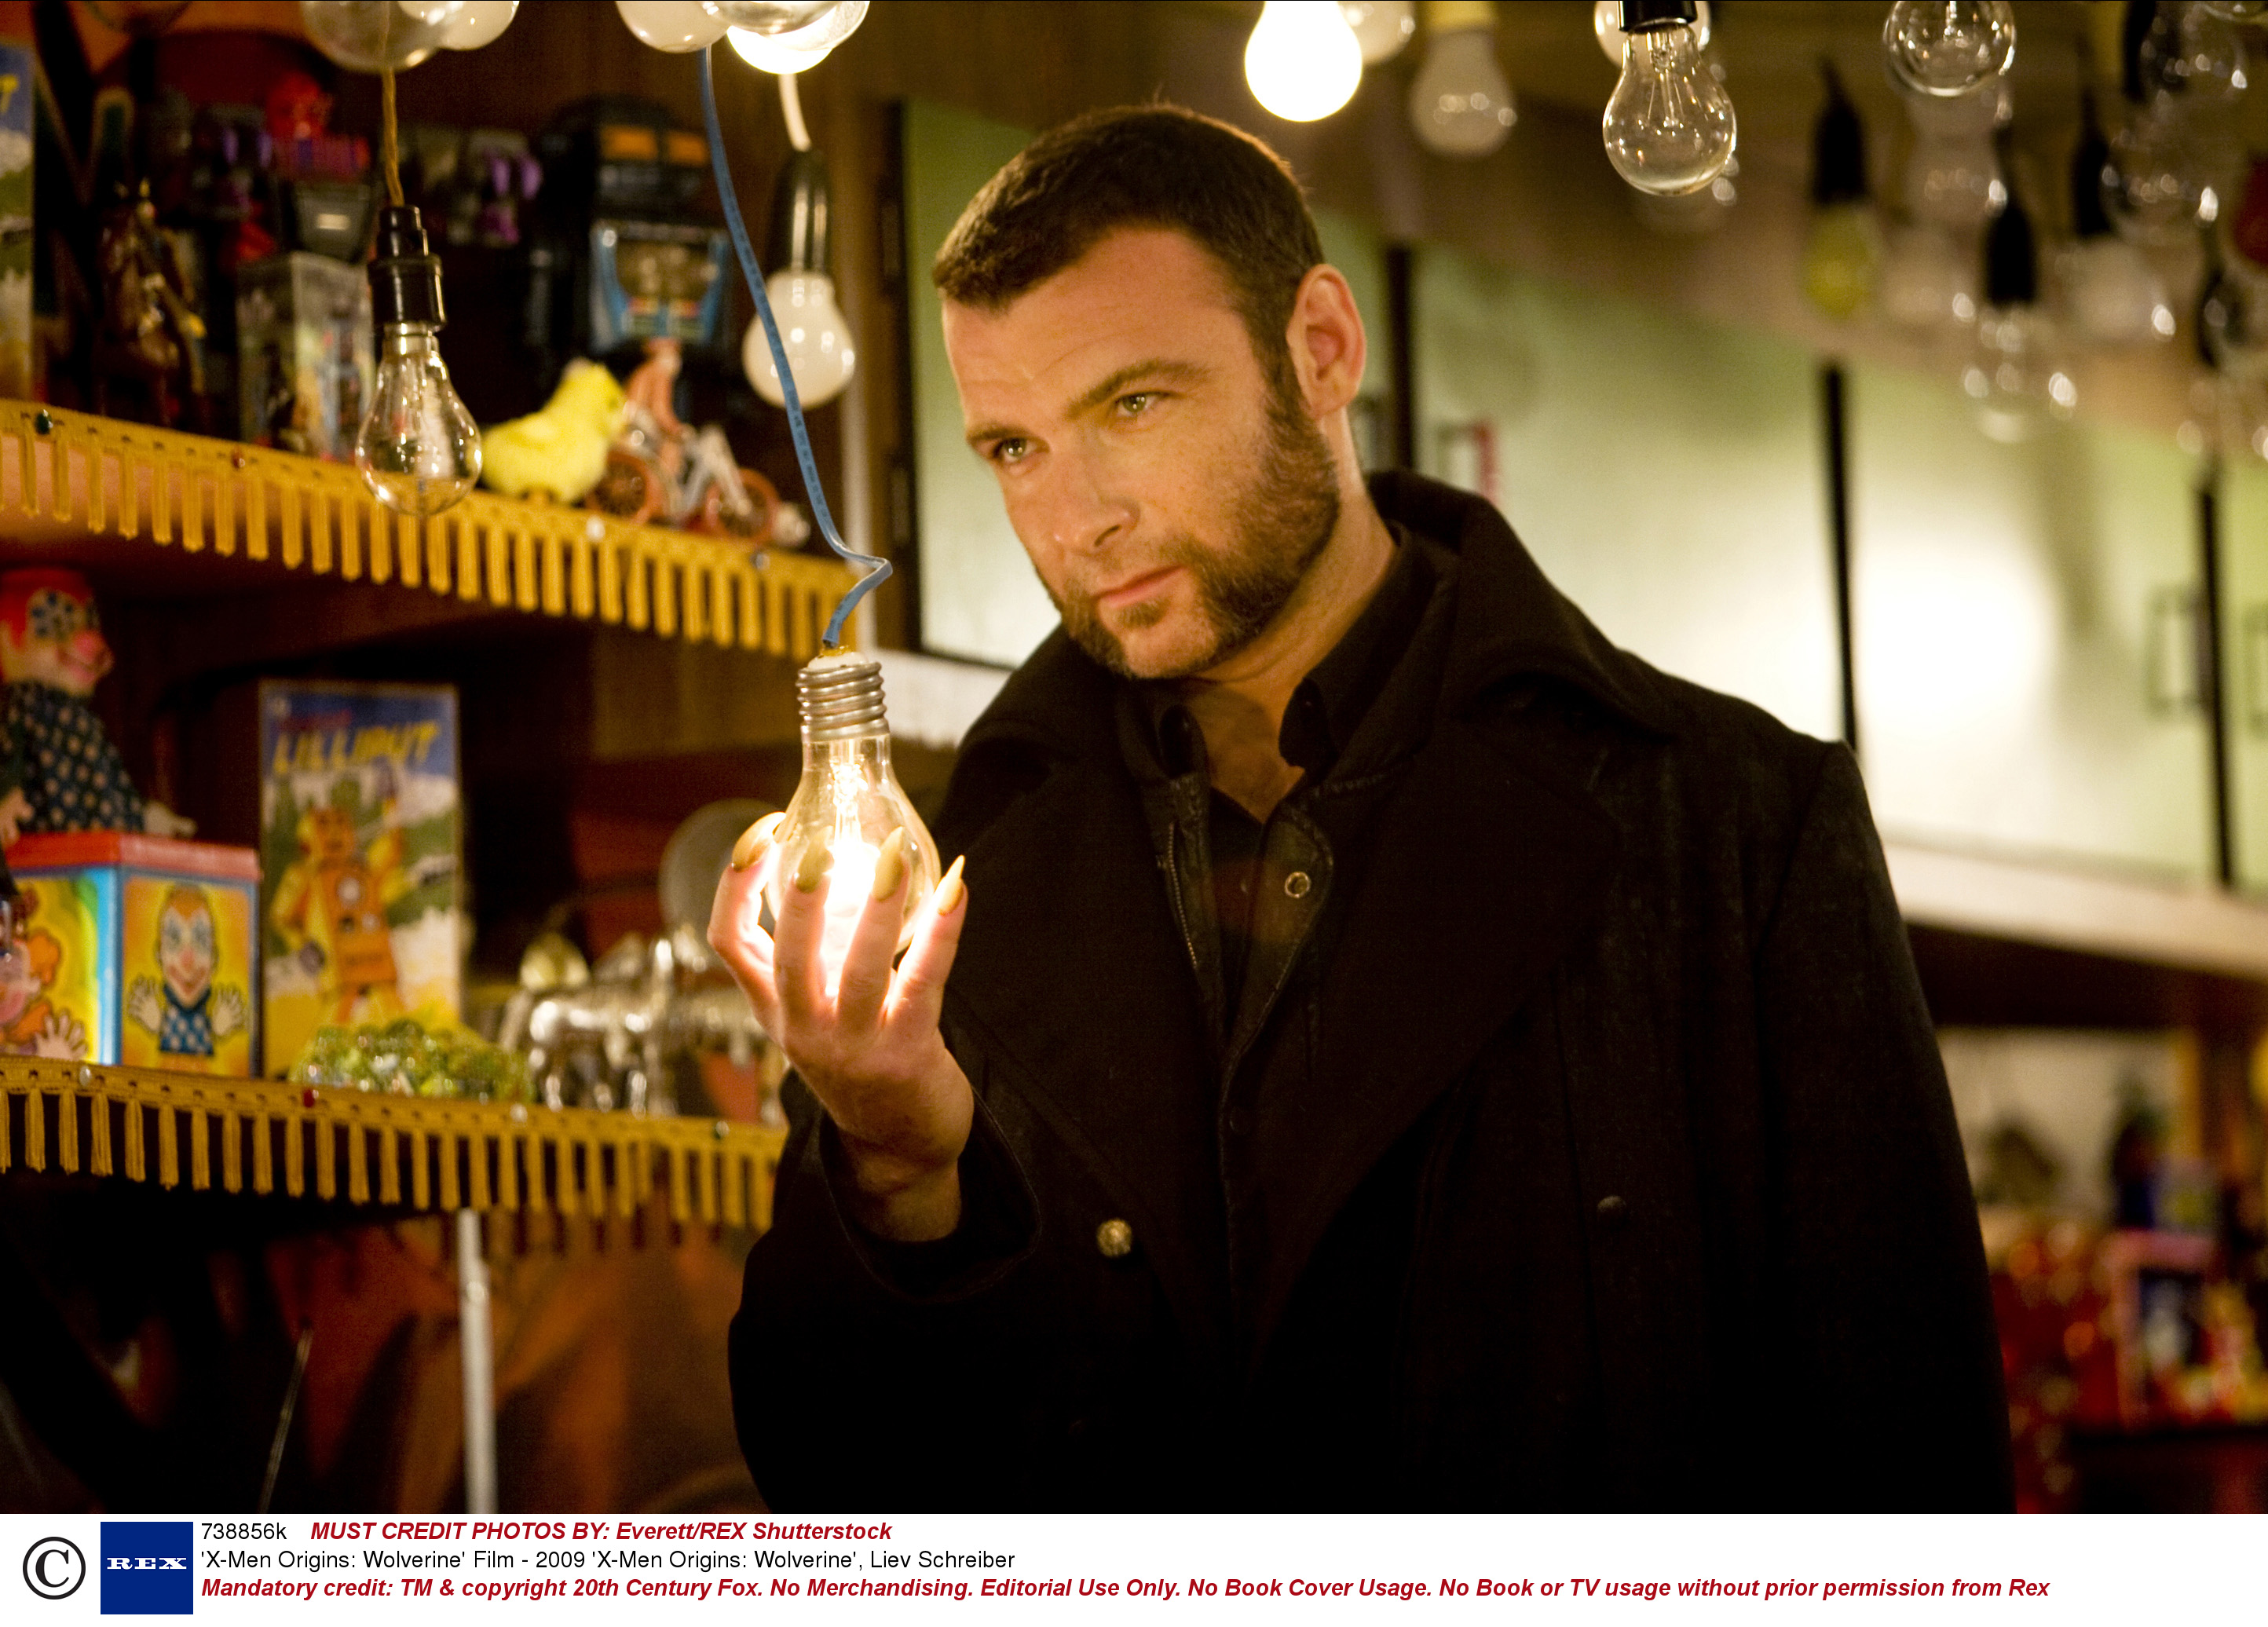 Is Liev Schreiber coming back as Sabretooth for Wolverine 3?